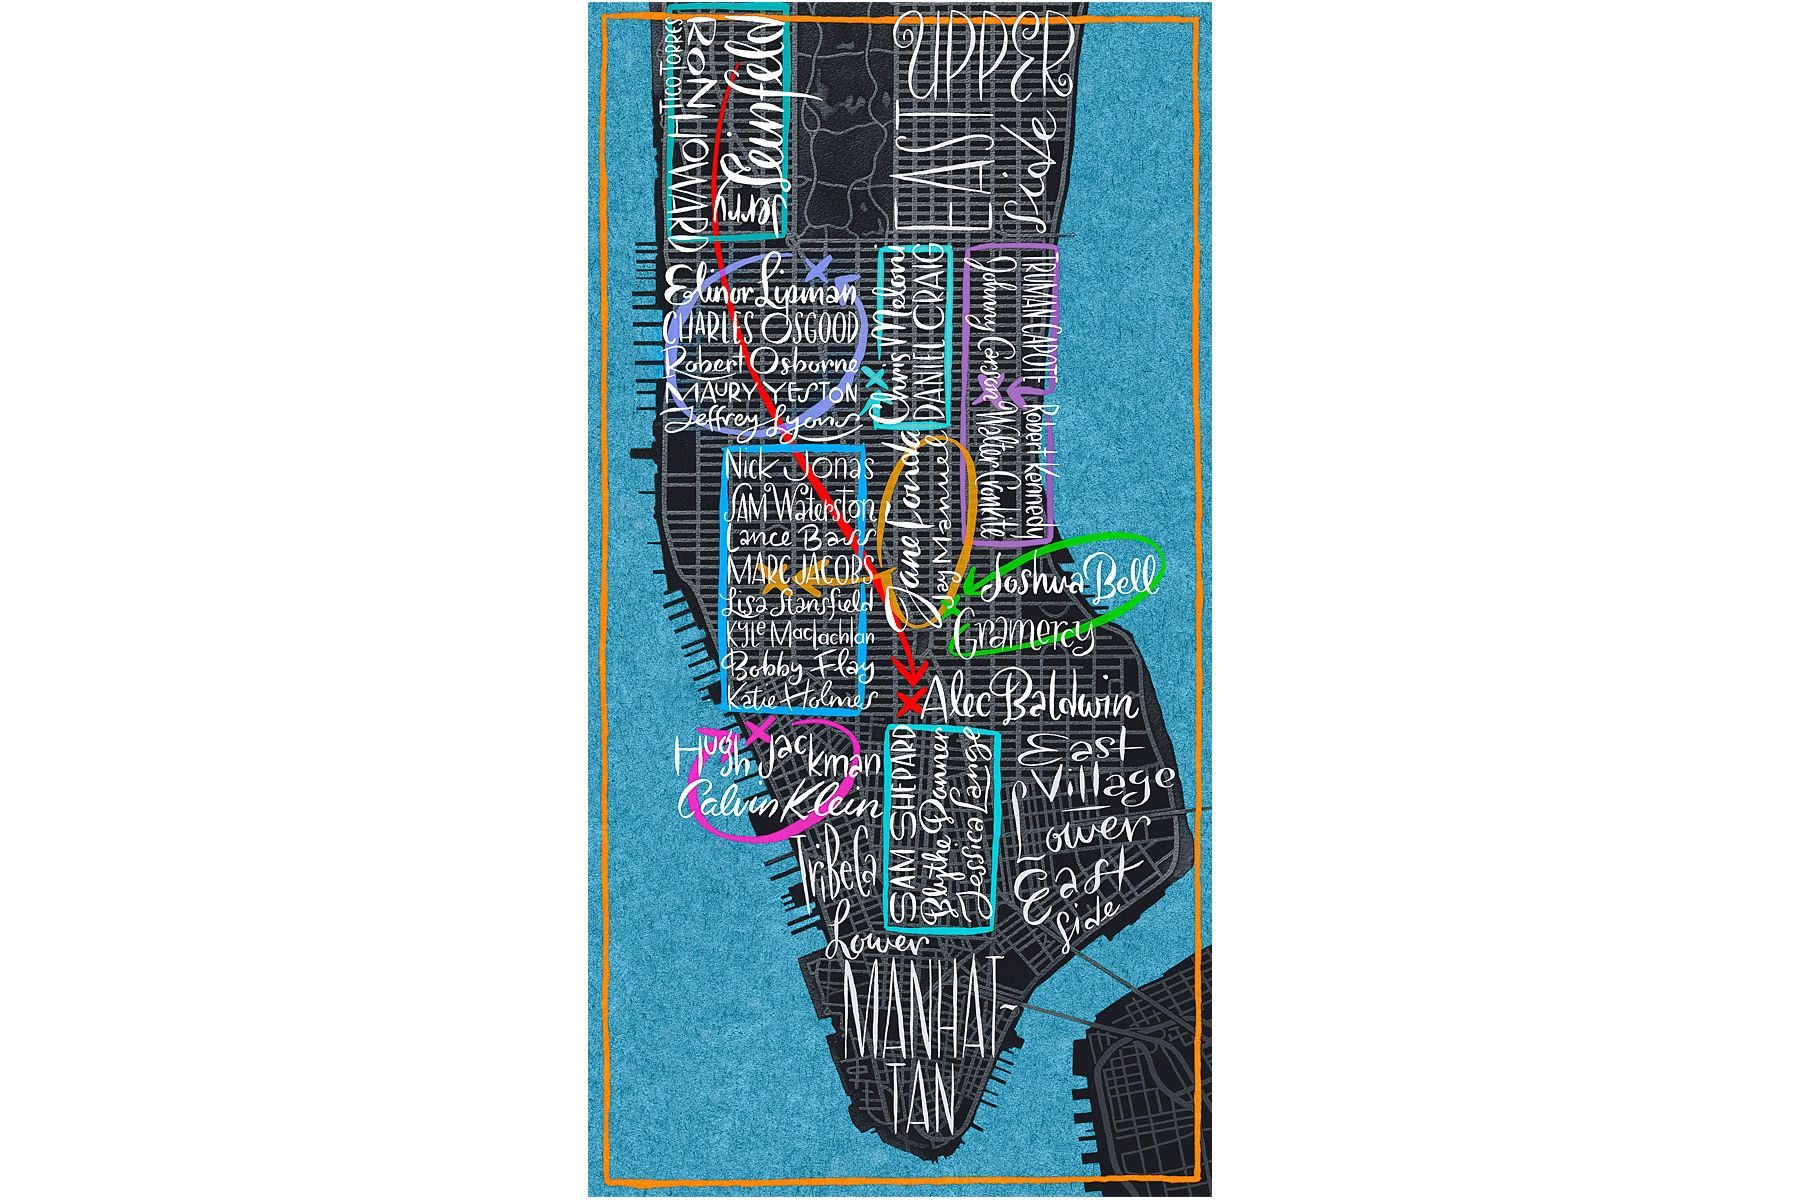 MANHATTAN Map Illustration © James Laish